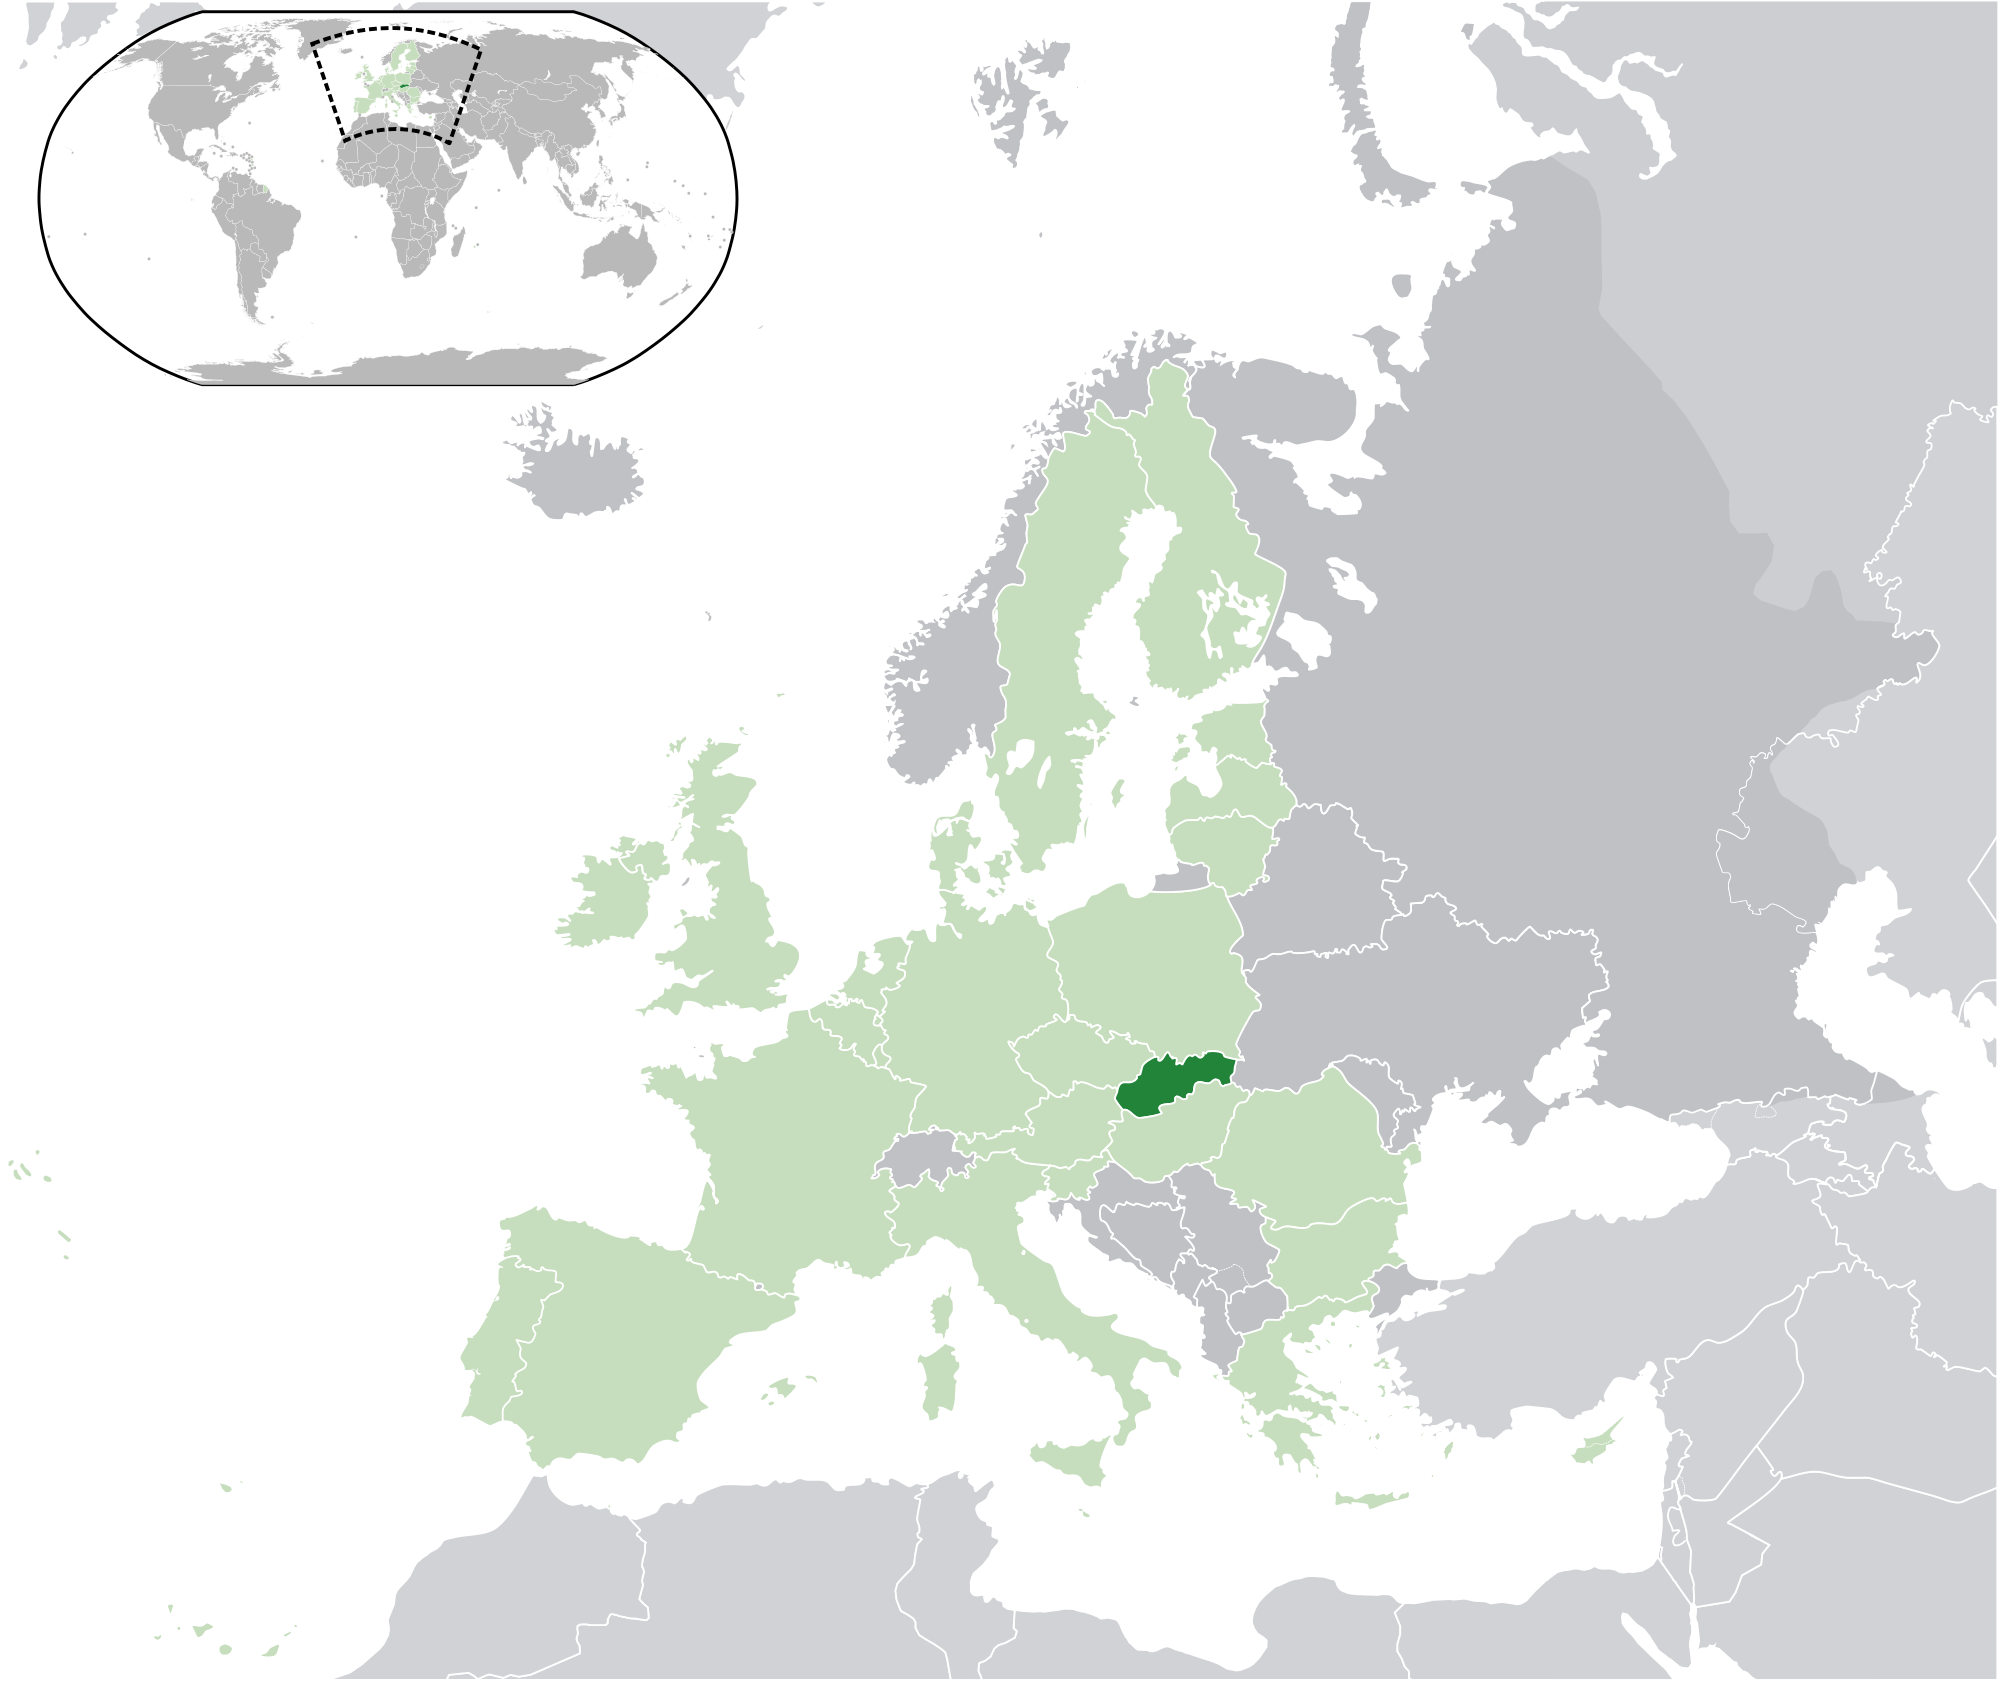 Location of the Slovakia in the World Map